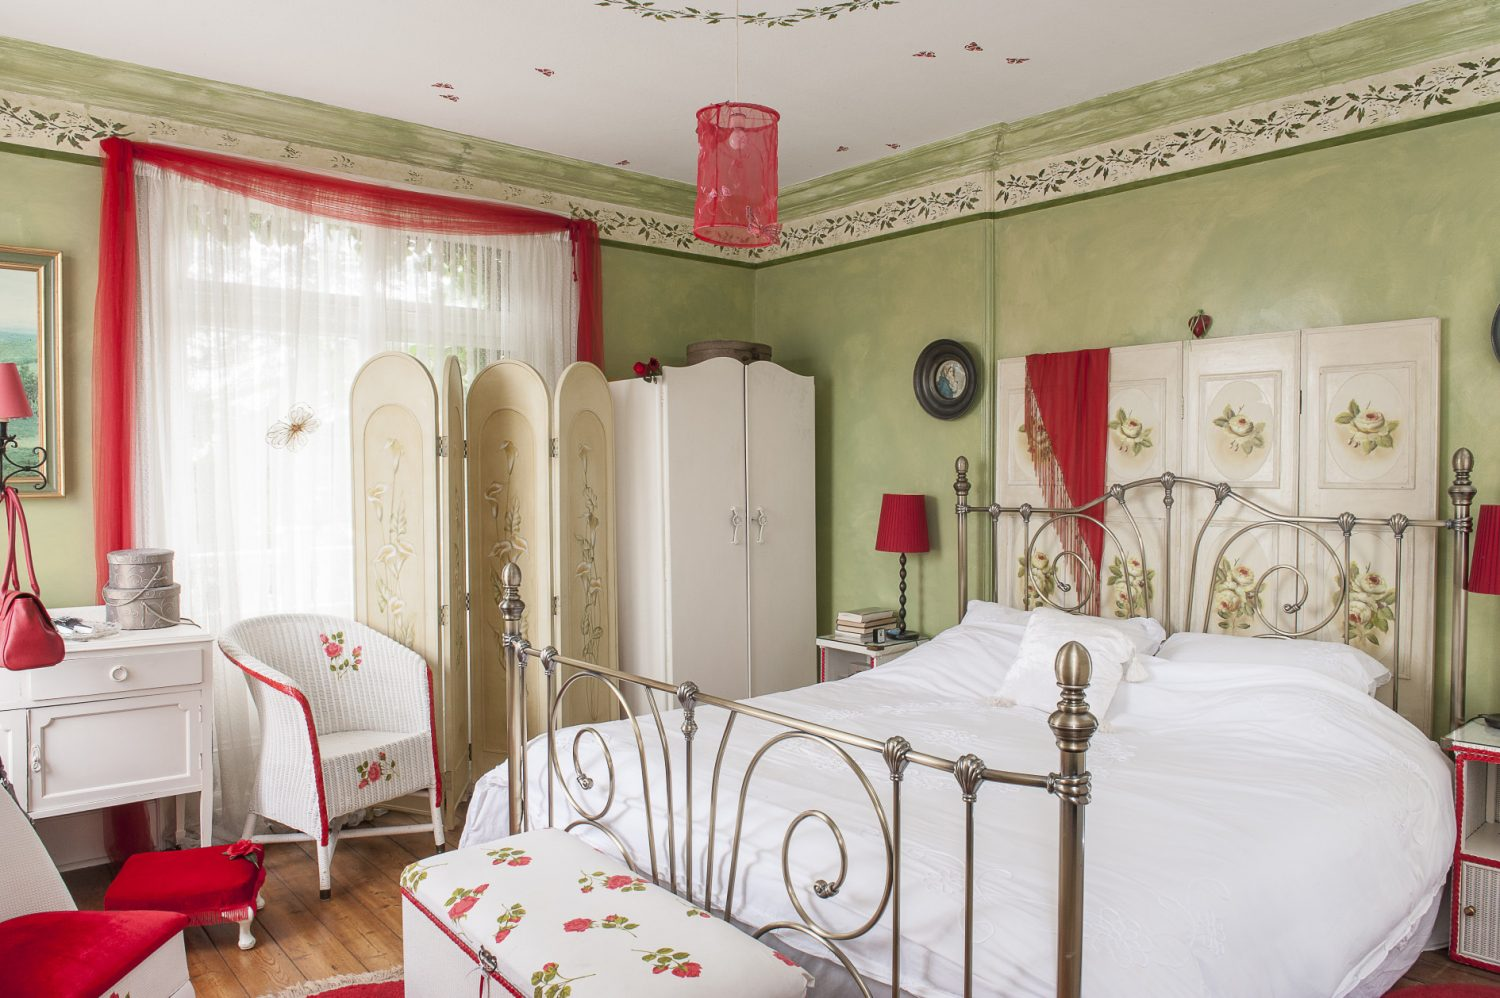 Mick and Carmel's room is a bright and airy retreat. Accents of olive green and red, combined with Carmel's stencils, work together to create a rather Mediterranean feel